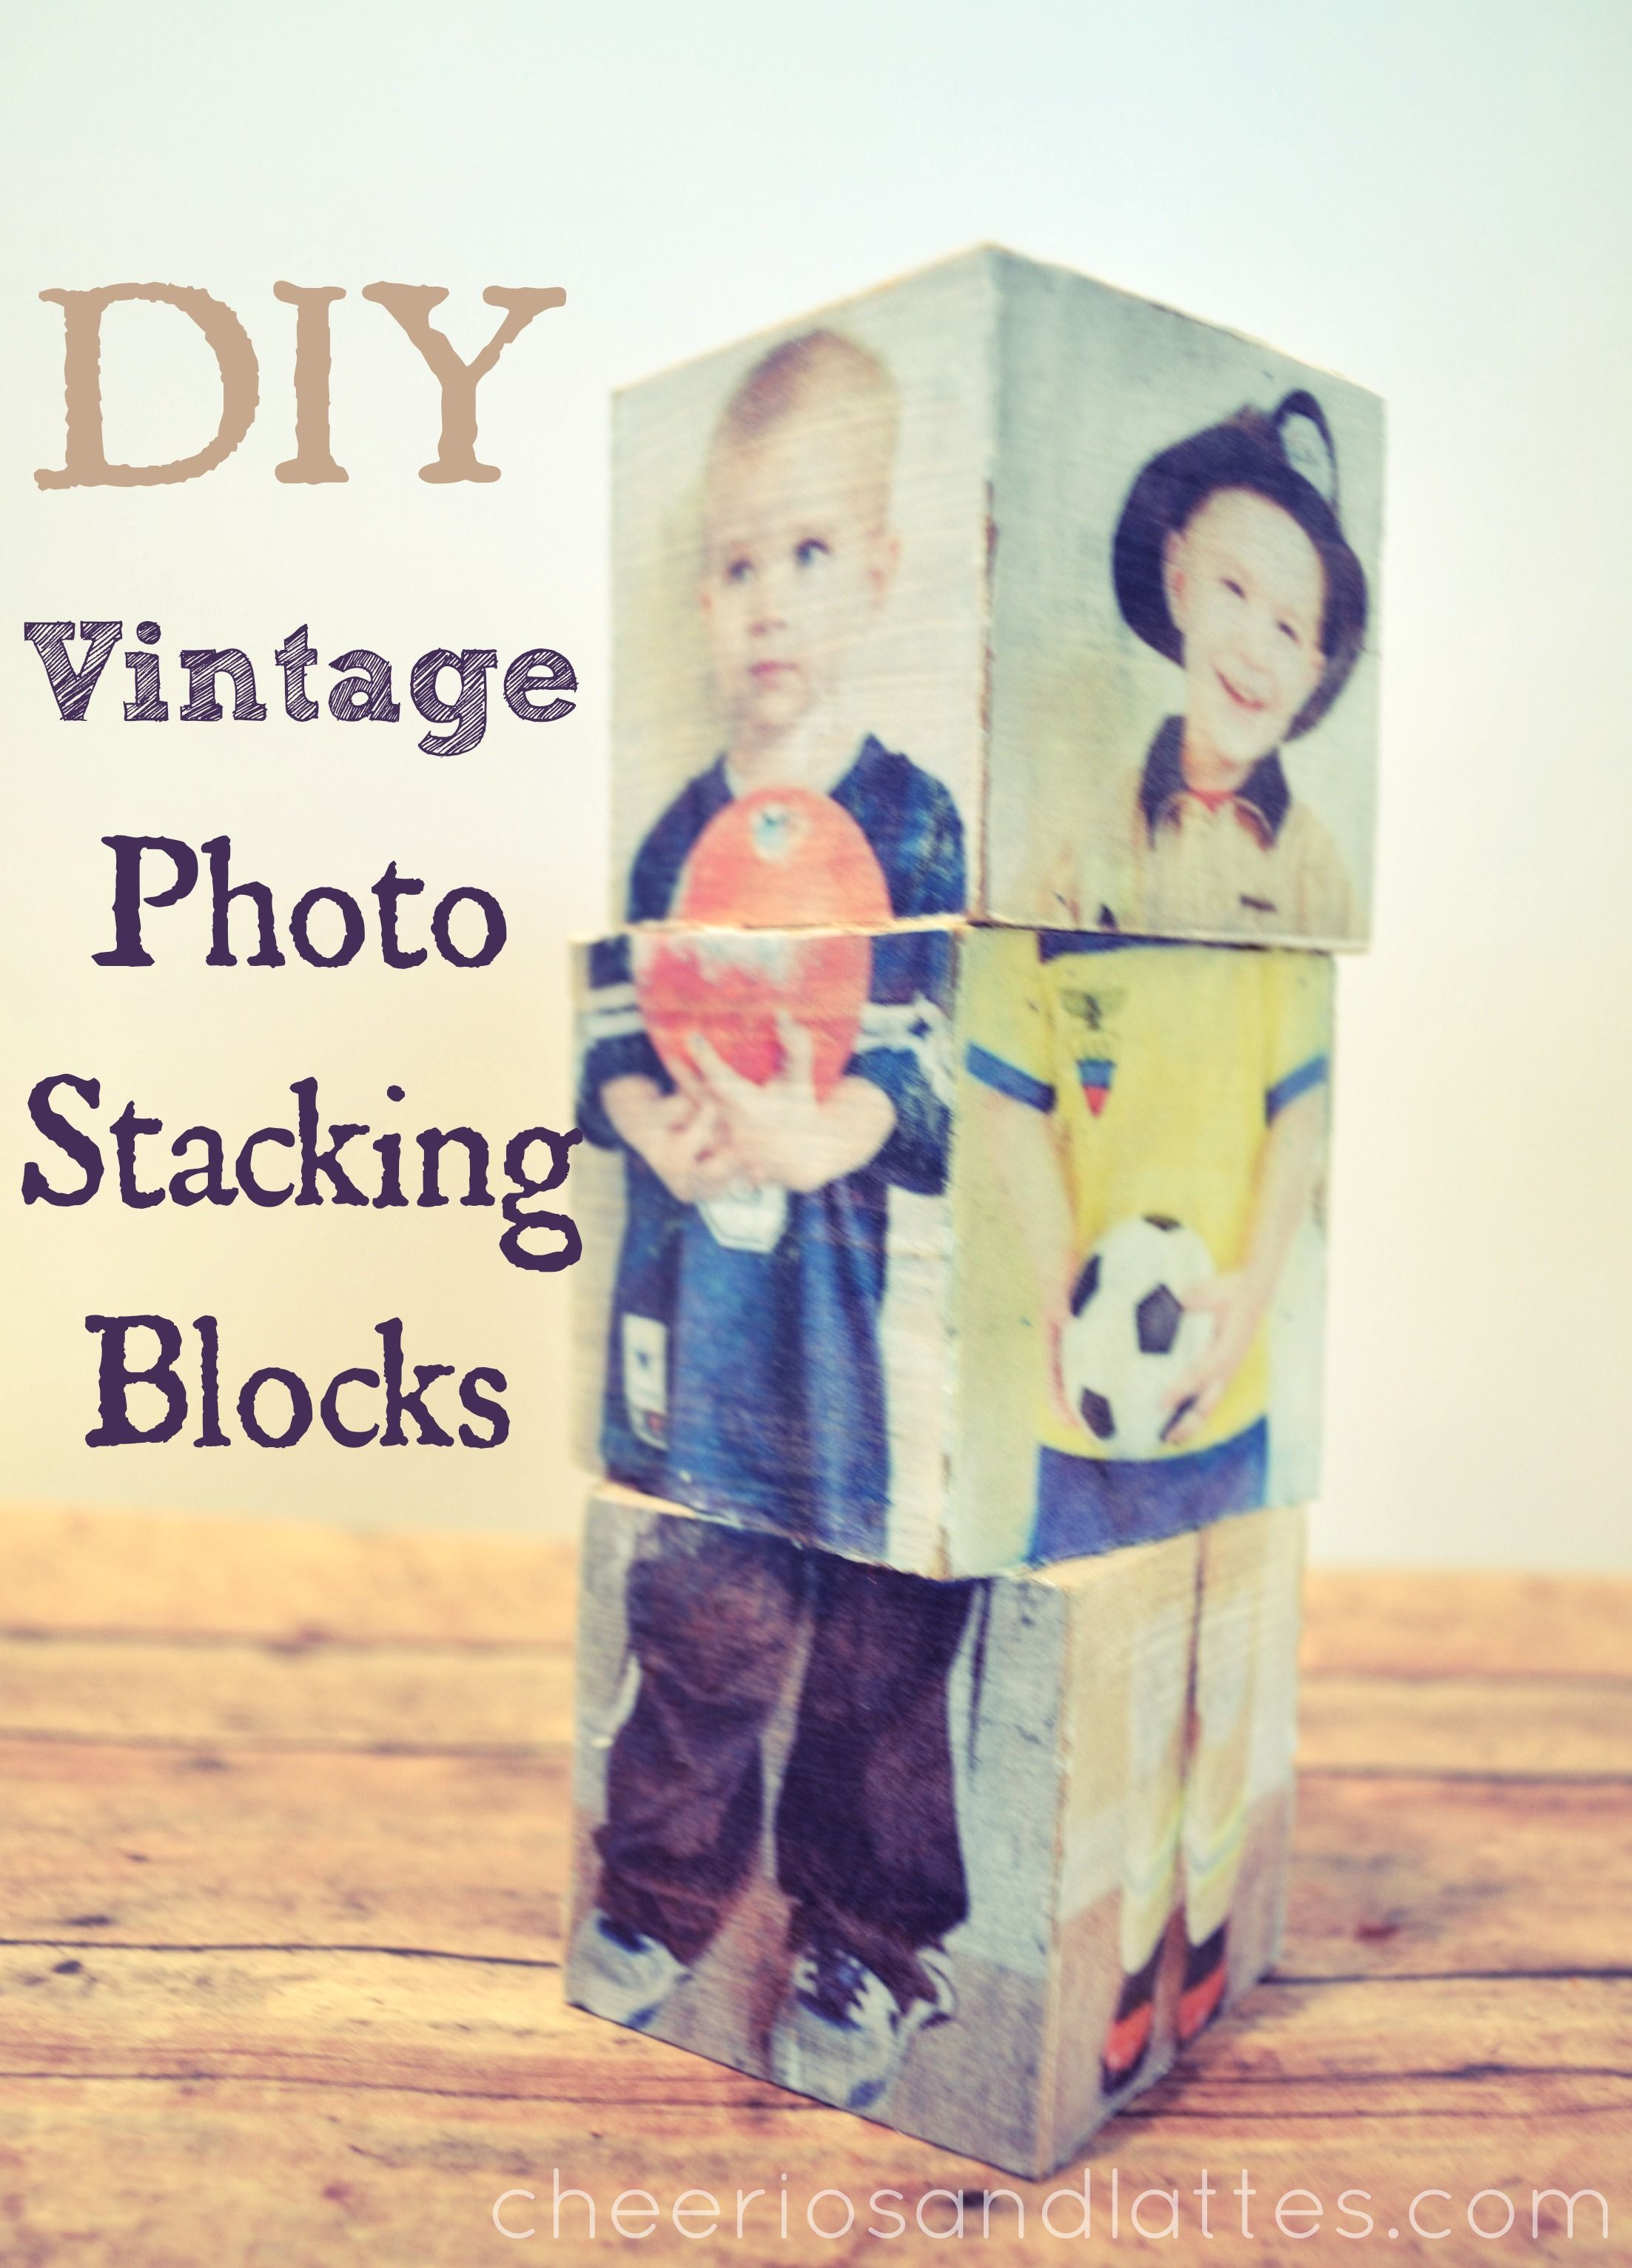 DIY Vintage Photo Stacking Blocks; I know these are supposed to be for the home, but when I see them, I think of what a great pre-school teaching toy they could be.